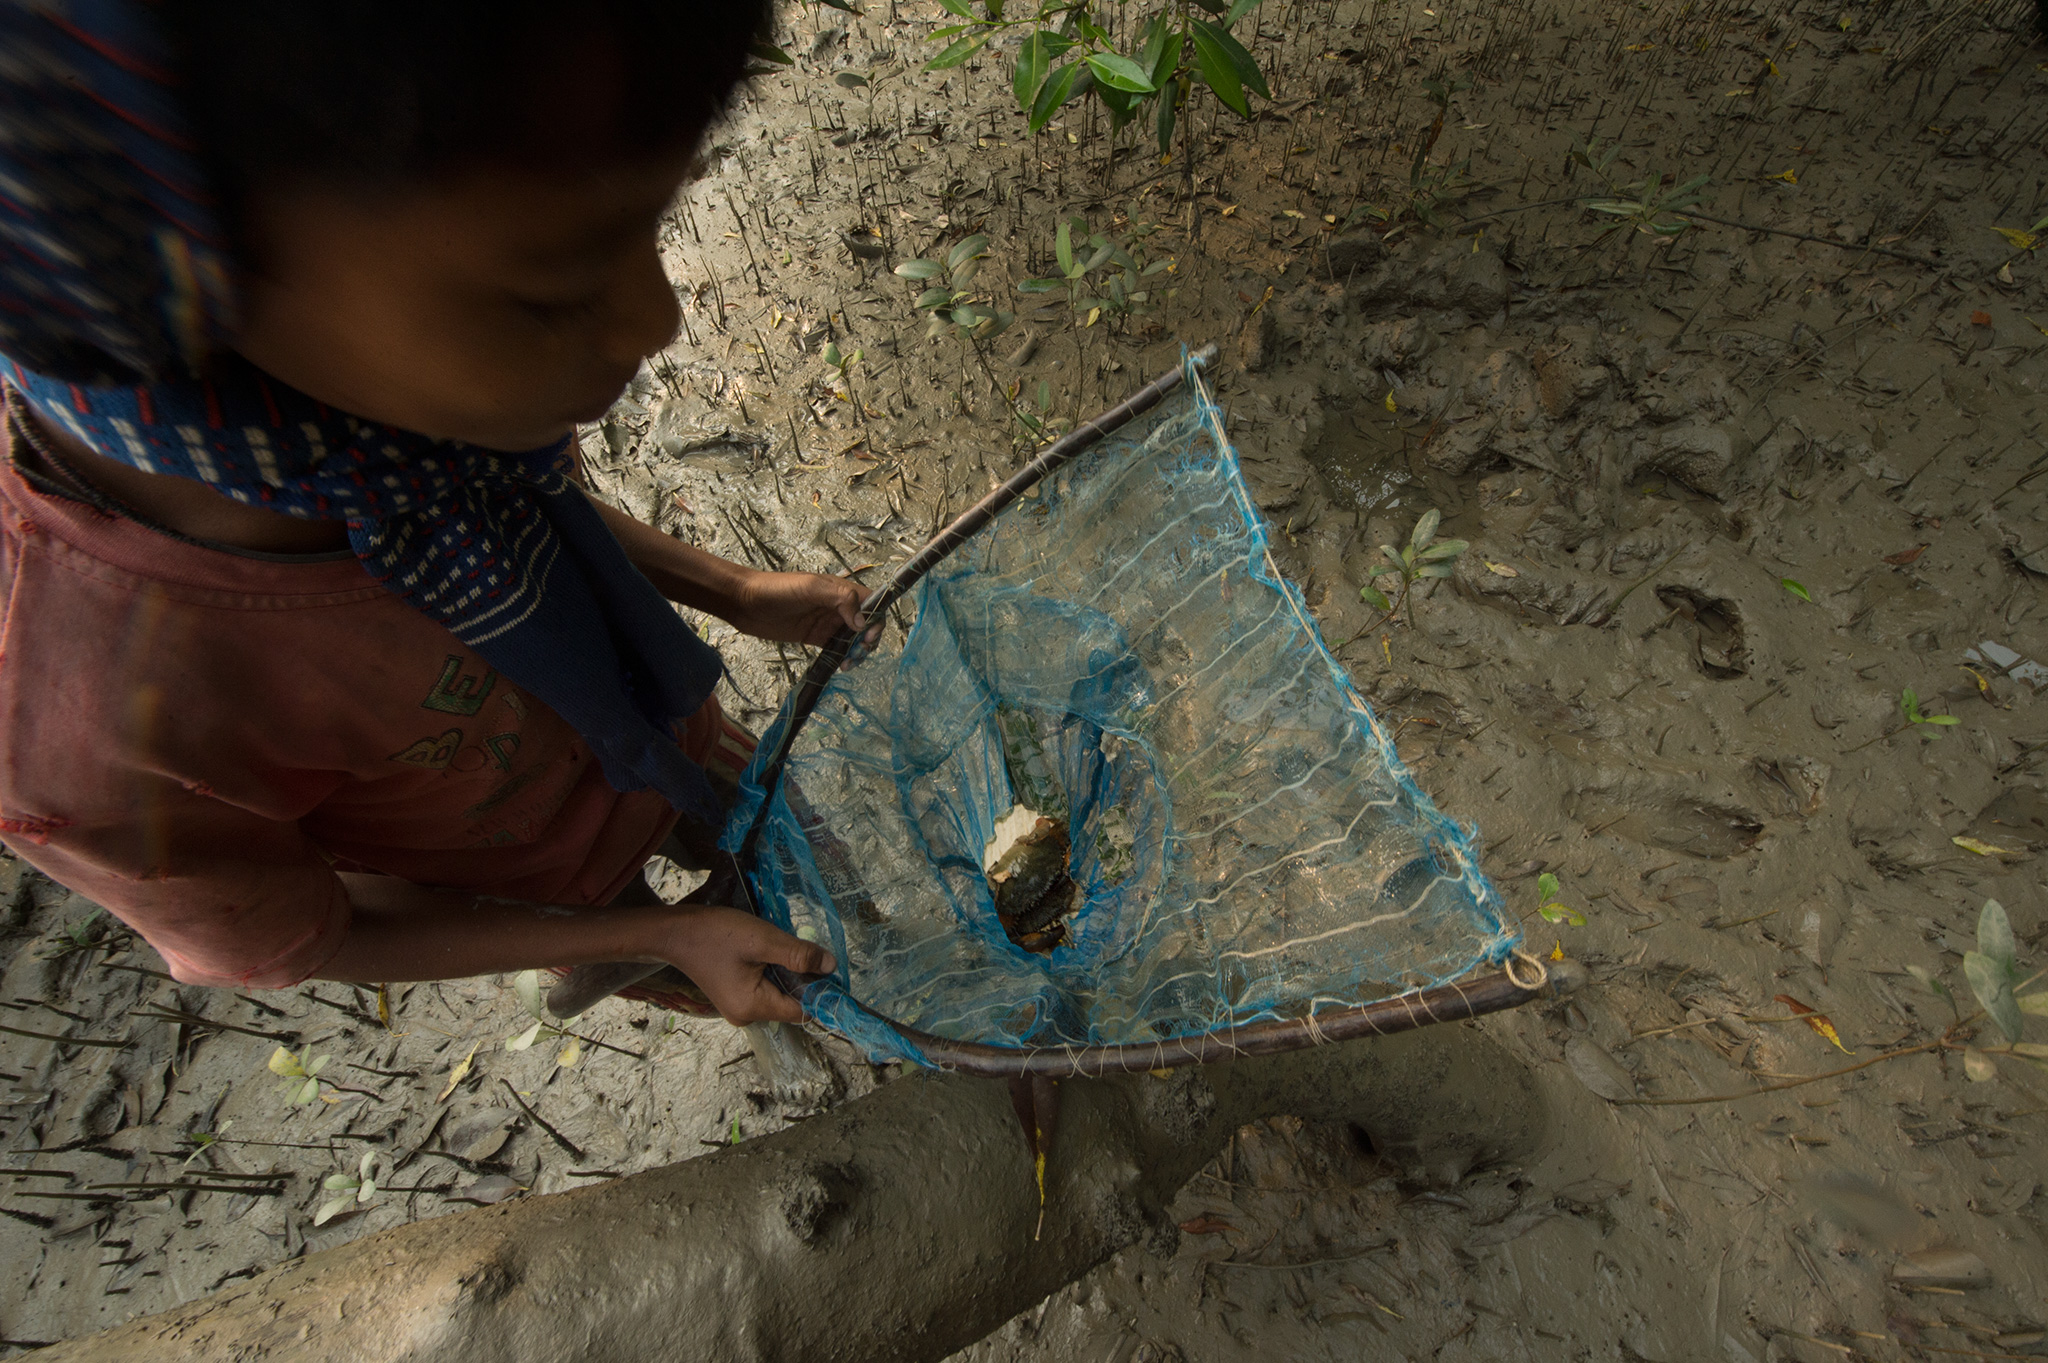 Borun, the younger son, shows off two mud crabs in the net.